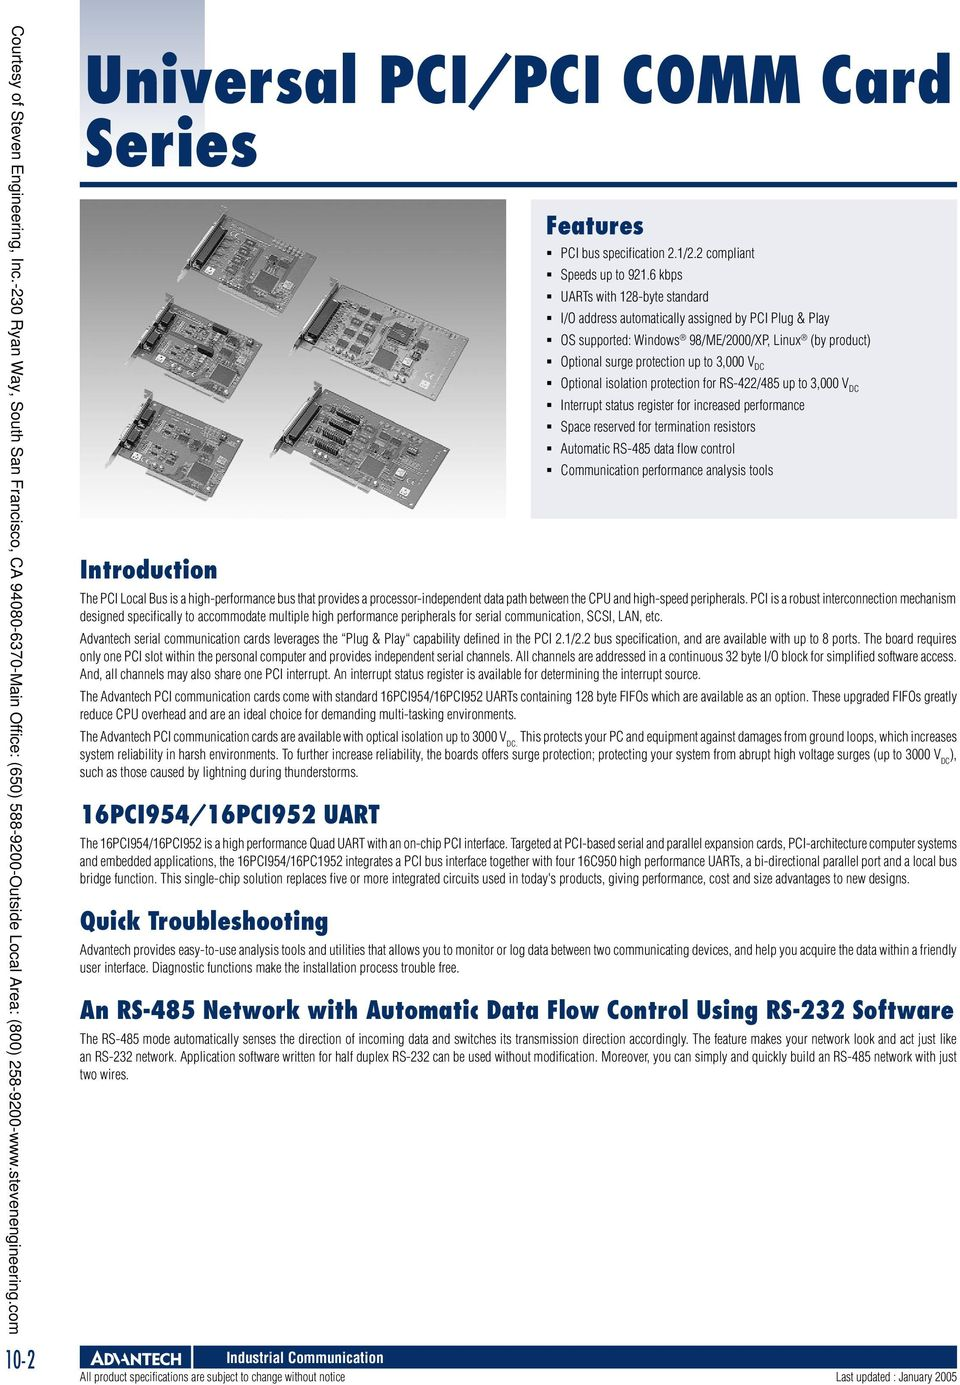 Industrial Communication Pdf Rs 485 Data Interface Gives Isolated Full Duplex Operation Advantech Serial Cards Leverages The Plug Play Capability Defined In Pci